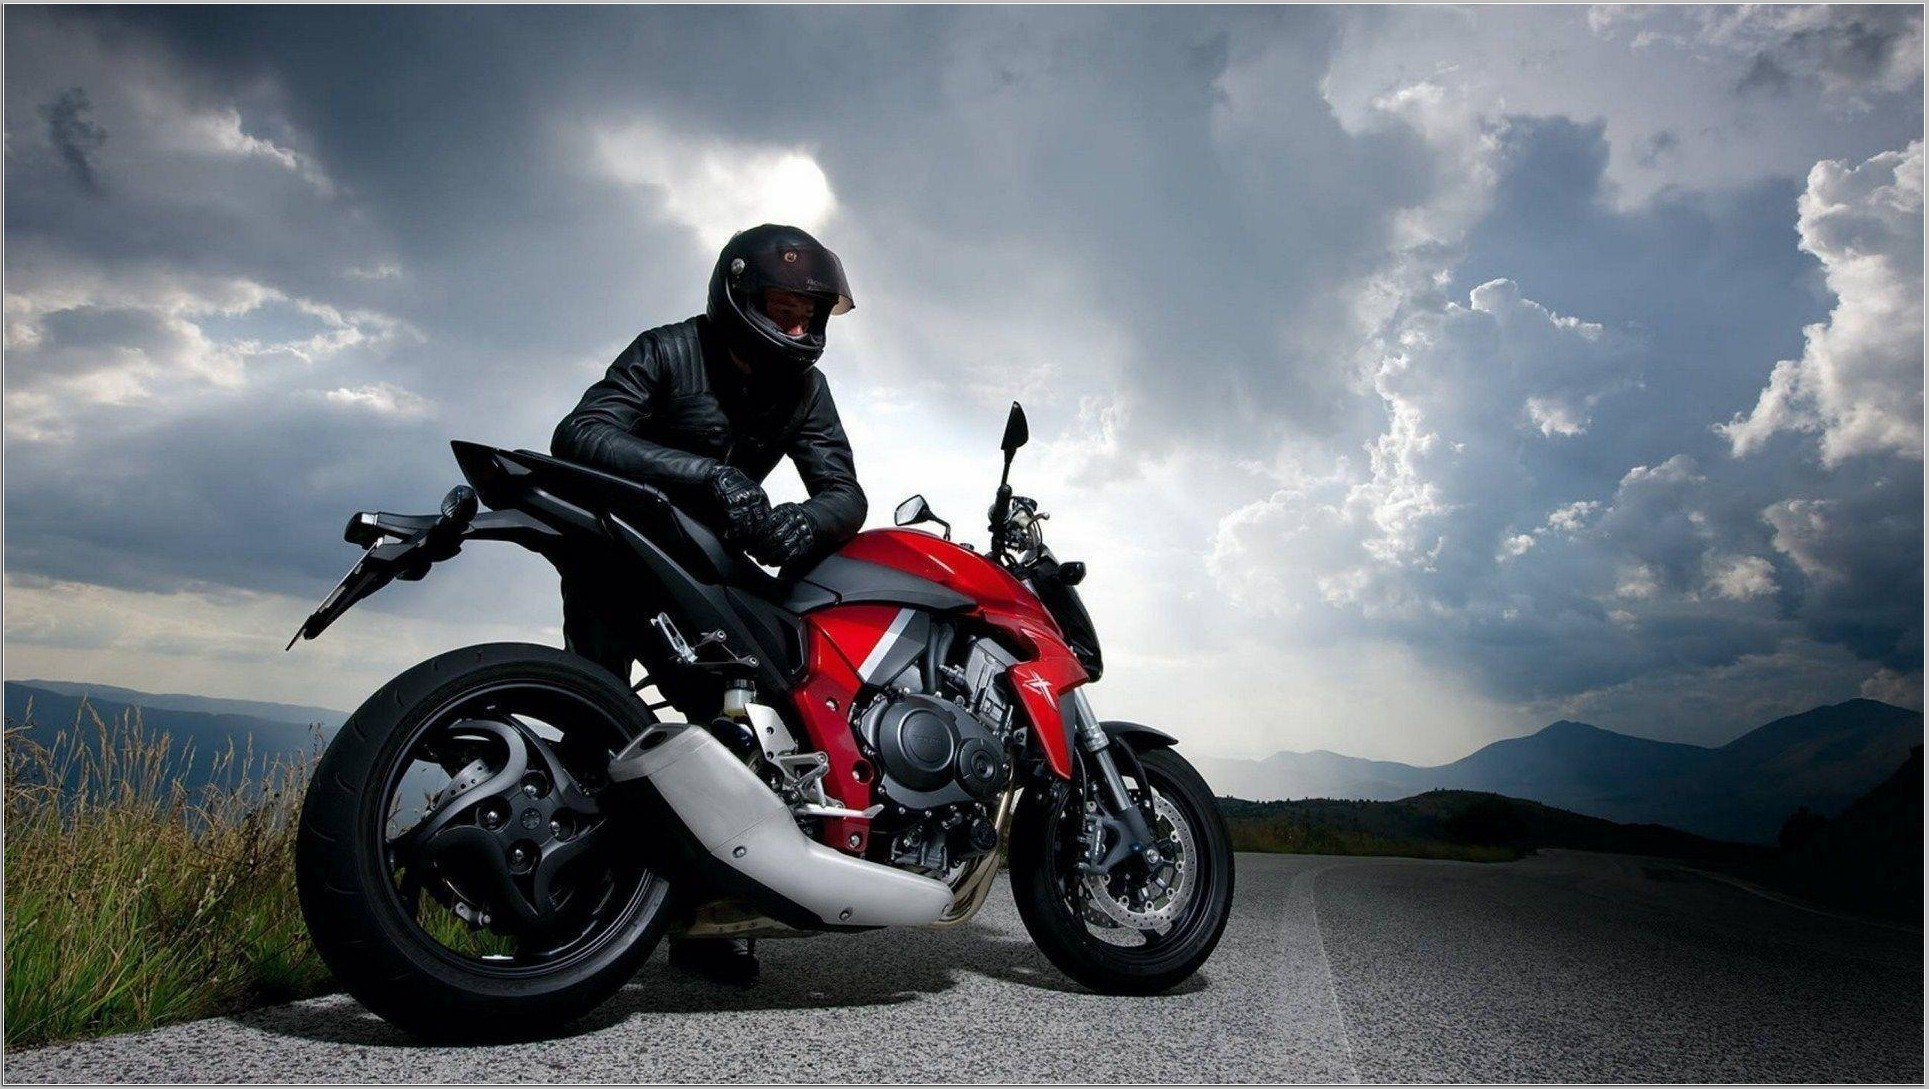 Top 19 biker wallpapers our latest collection - PicsBroker.com